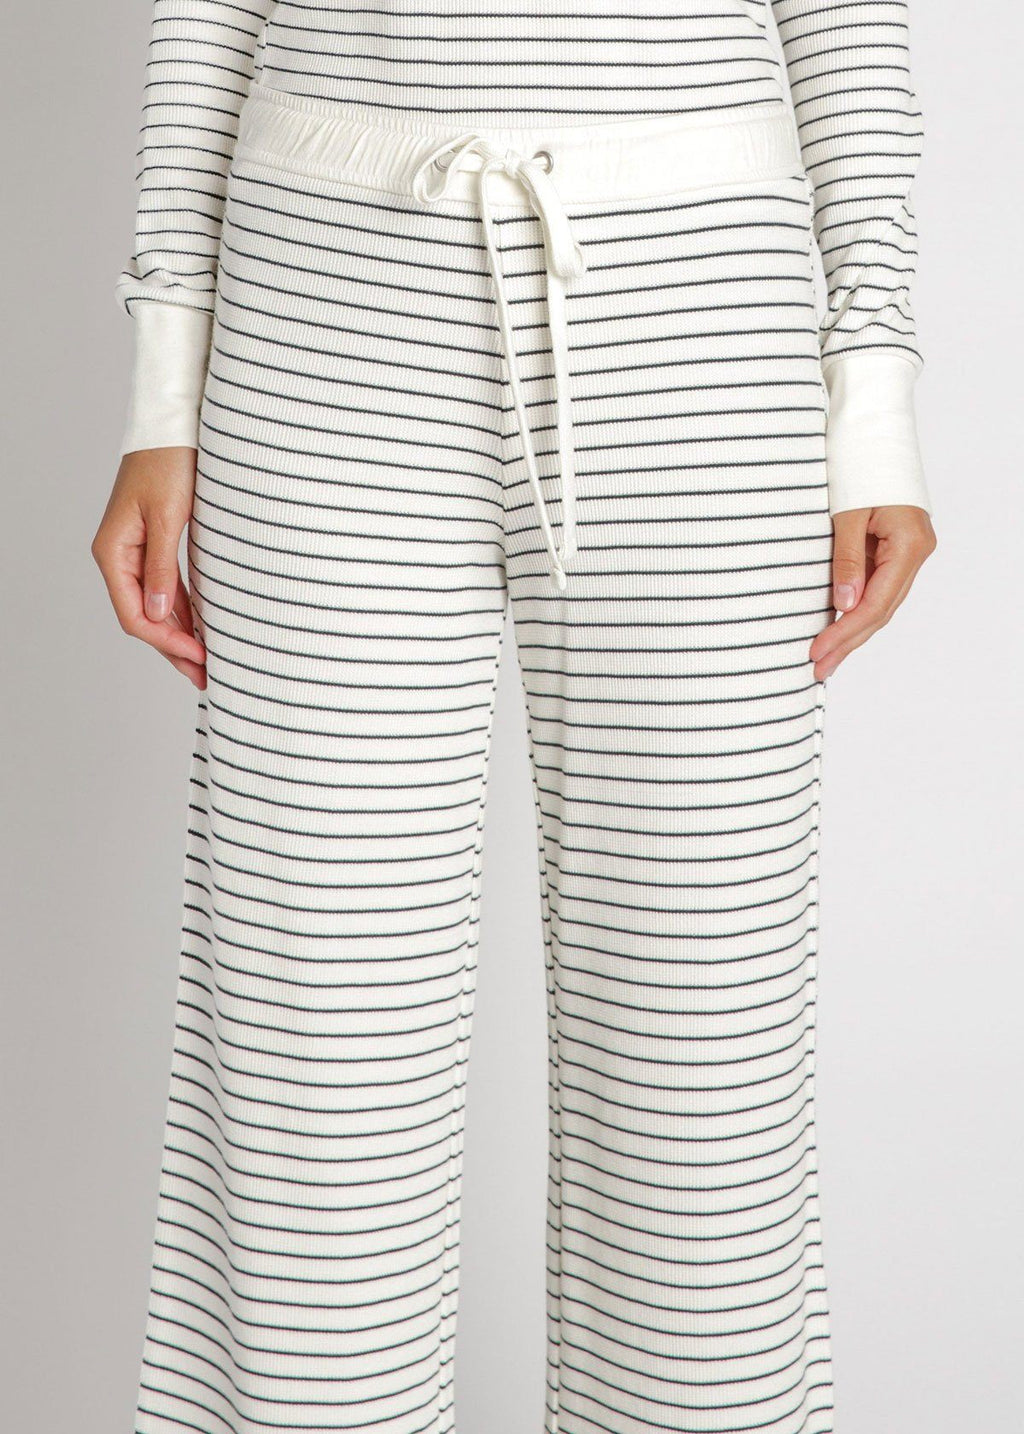 Pre-Order: Carlisle Thermal Pants - Ivory Stripe